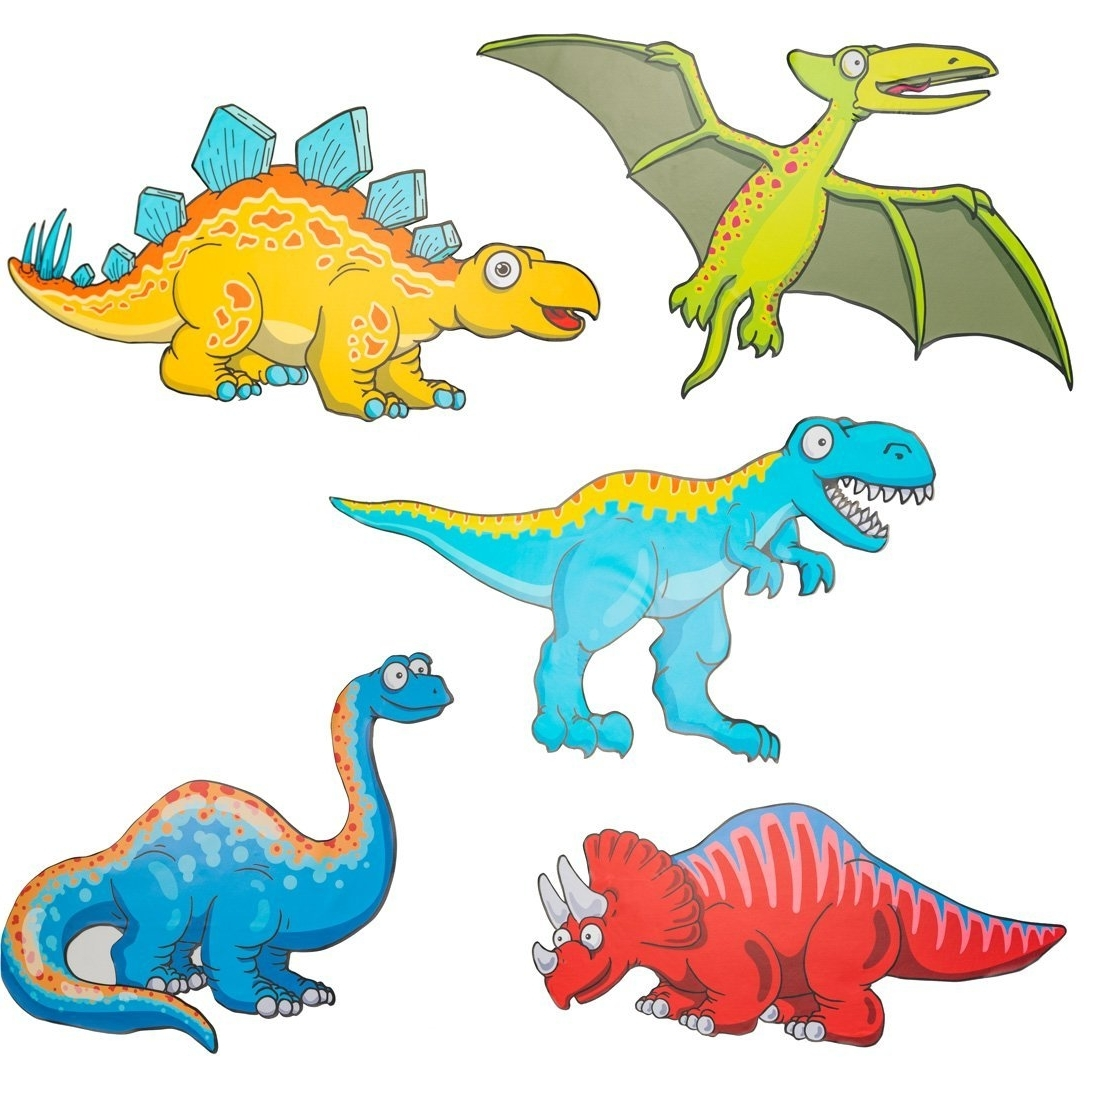 Widely Used Dinosaur Wall Art Regarding Cheap Dinosaur Wall Decals, Find Dinosaur Wall Decals Deals On Line (View 12 of 15)